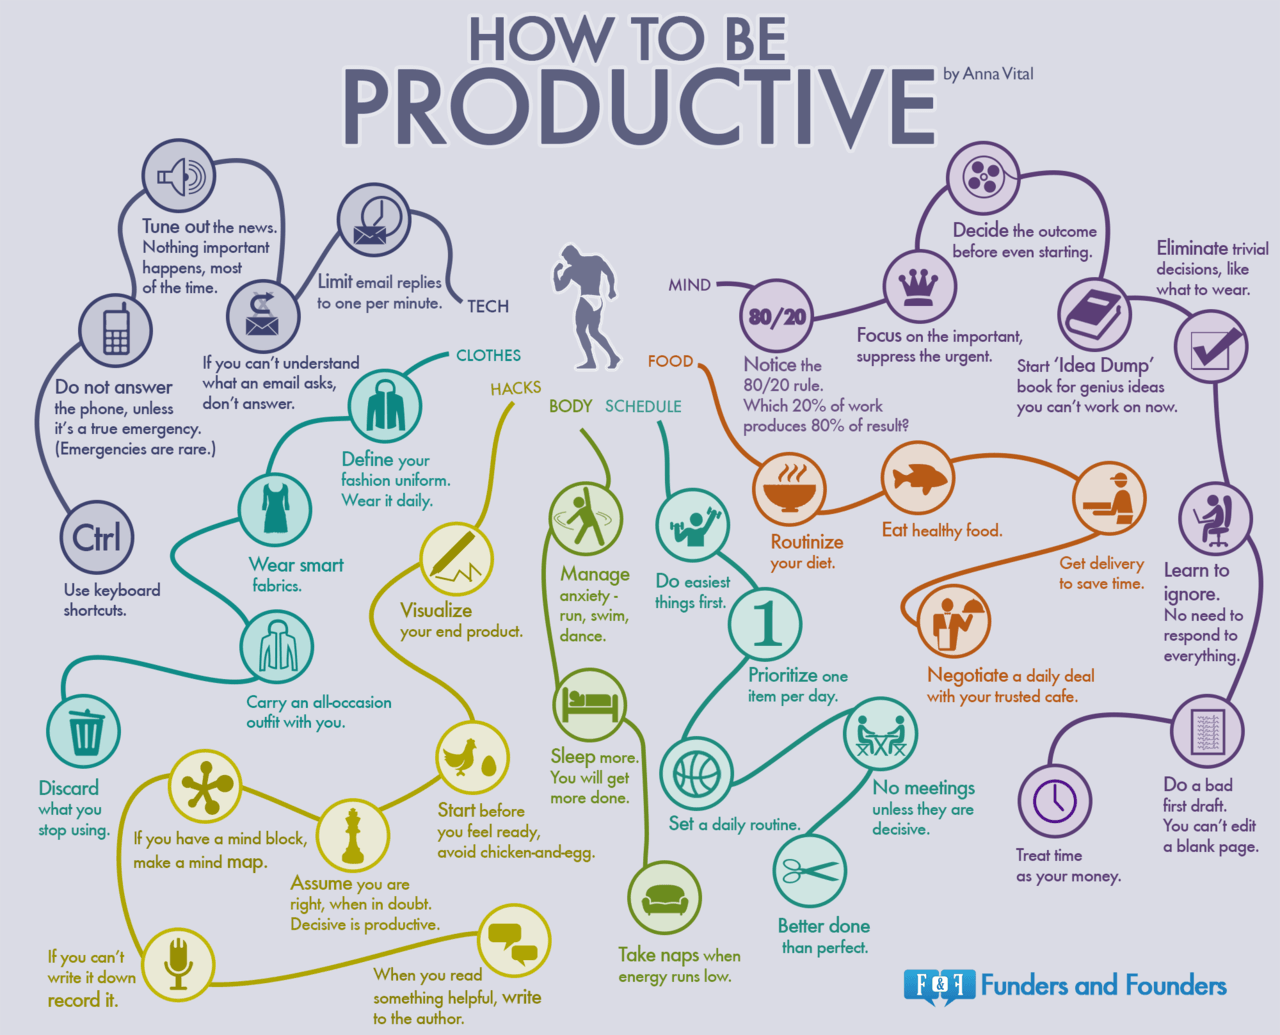 How To Be Productive - Anna Vital